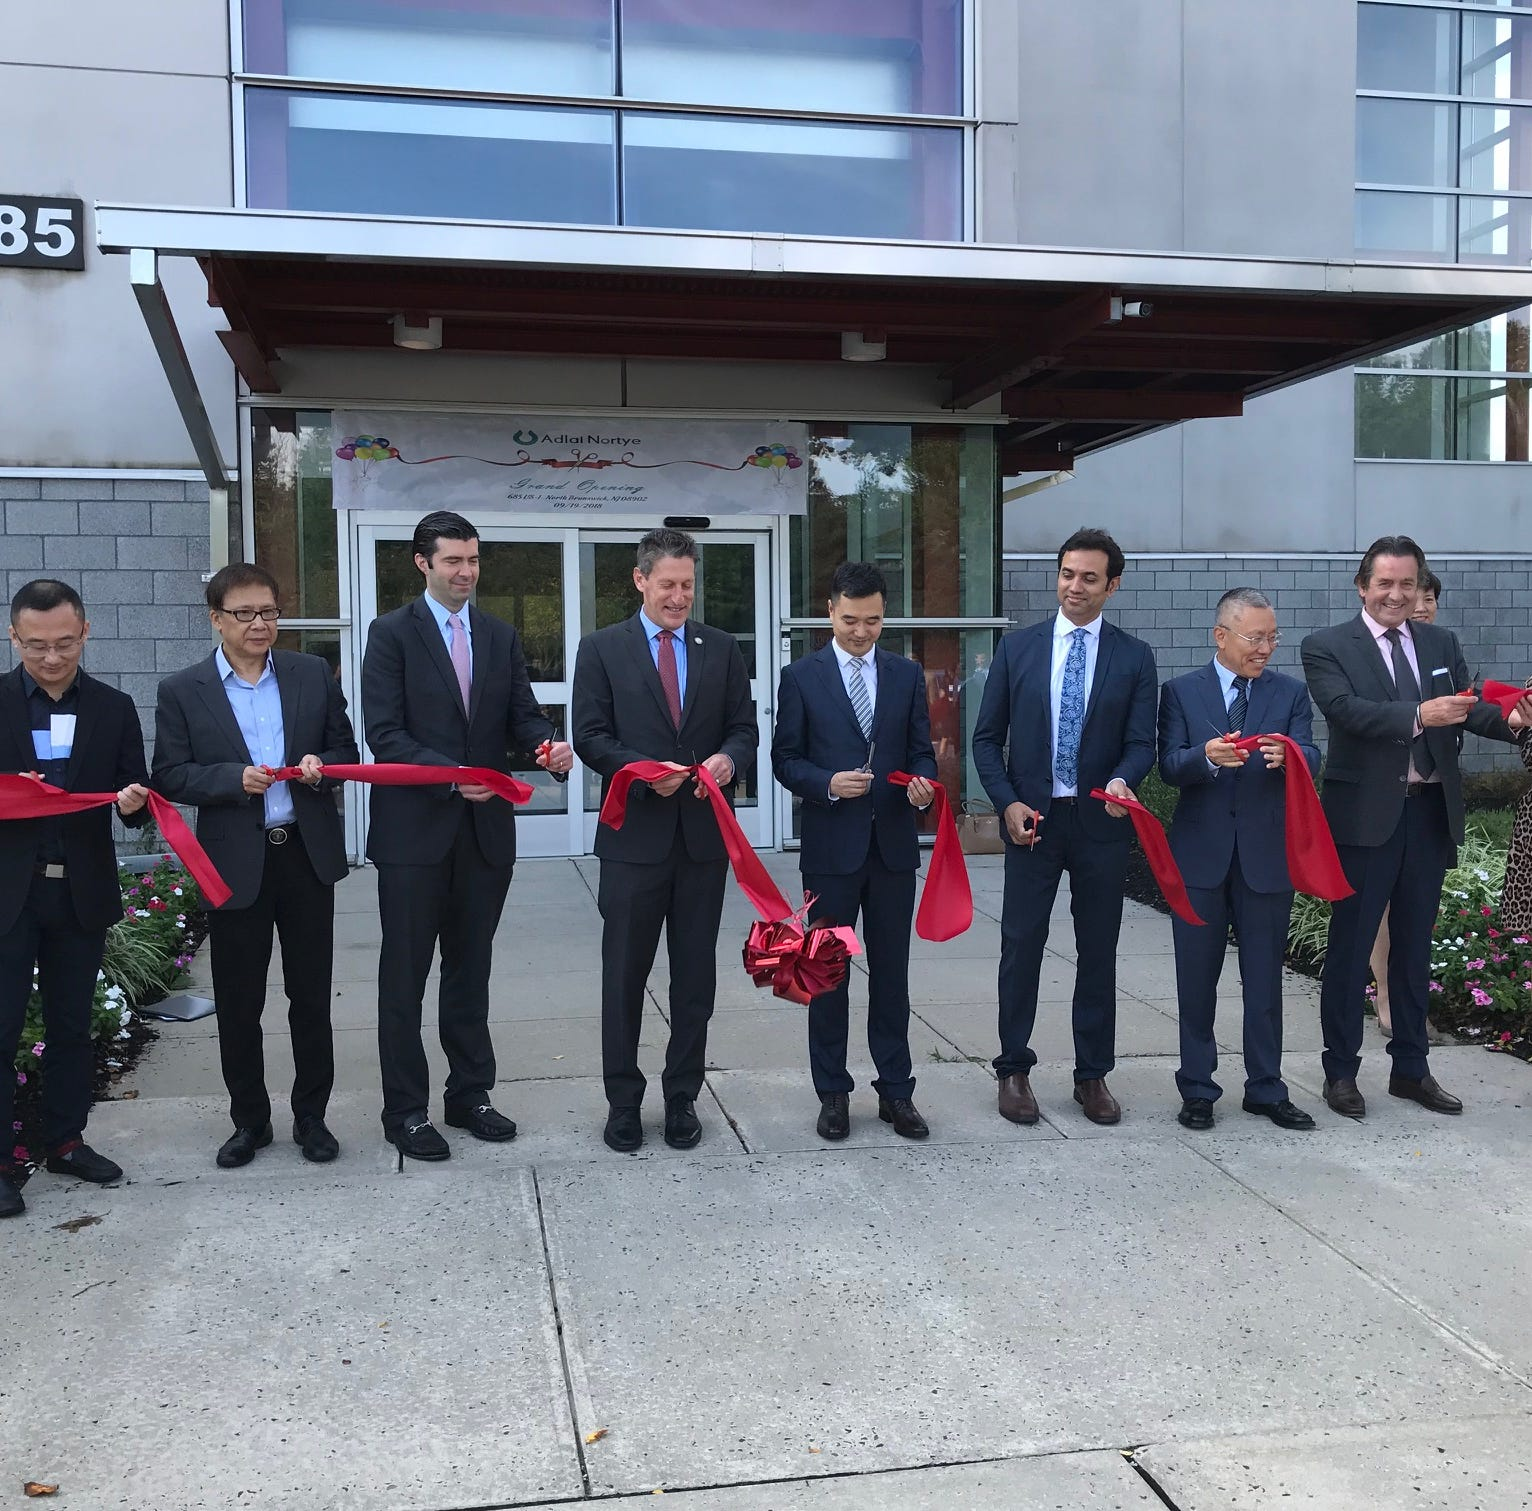 Adlai Nortye opens U.S. headquarters in North Brunswick